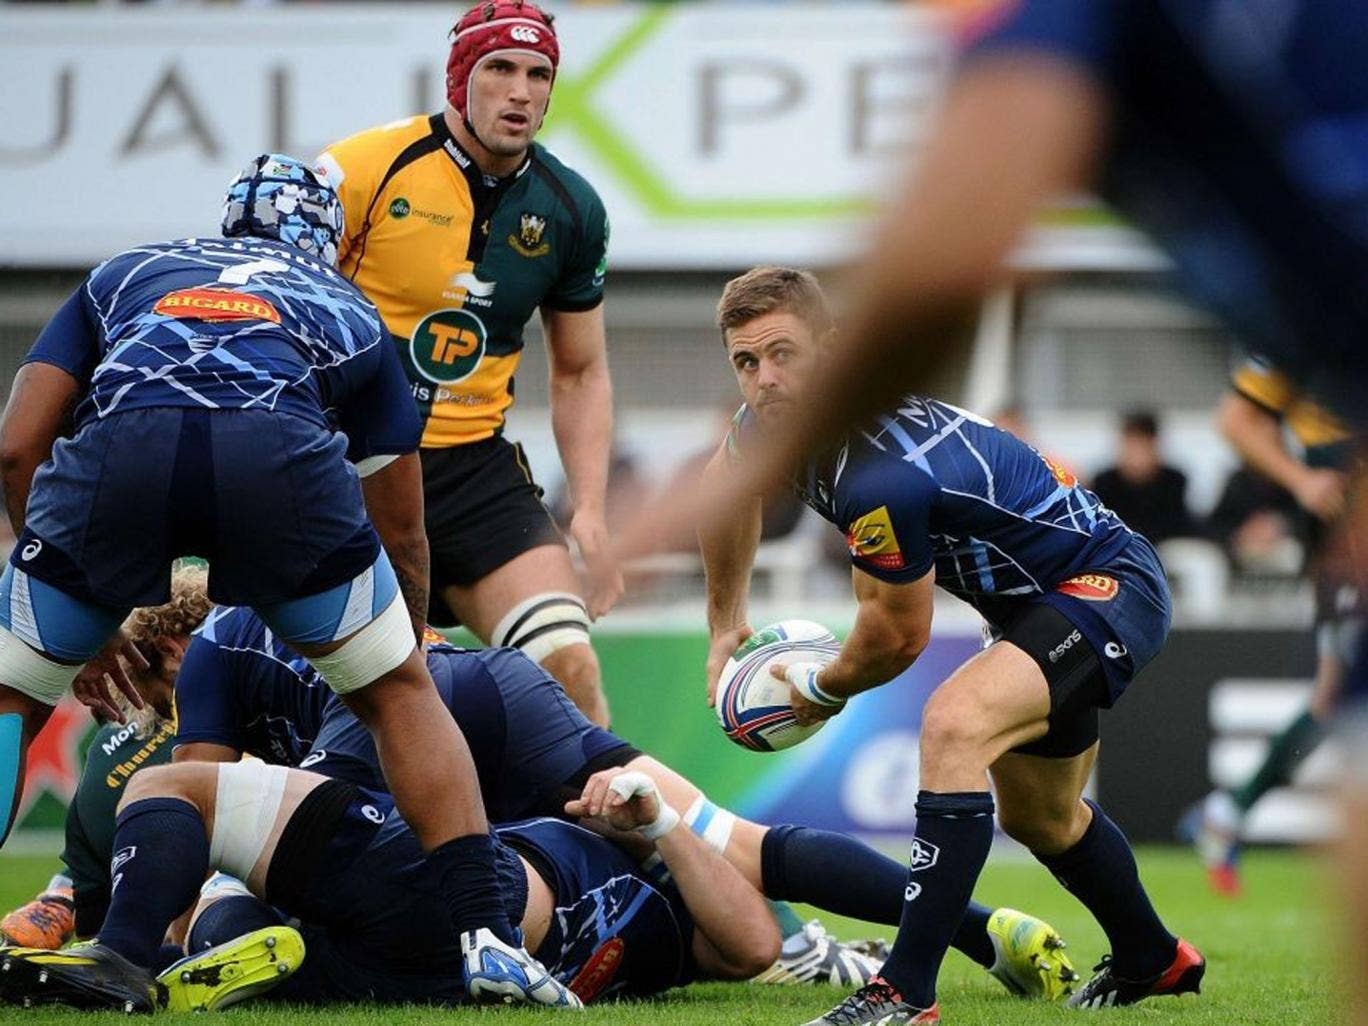 Castres' South African scrum-half Rory Kockott passes the ball